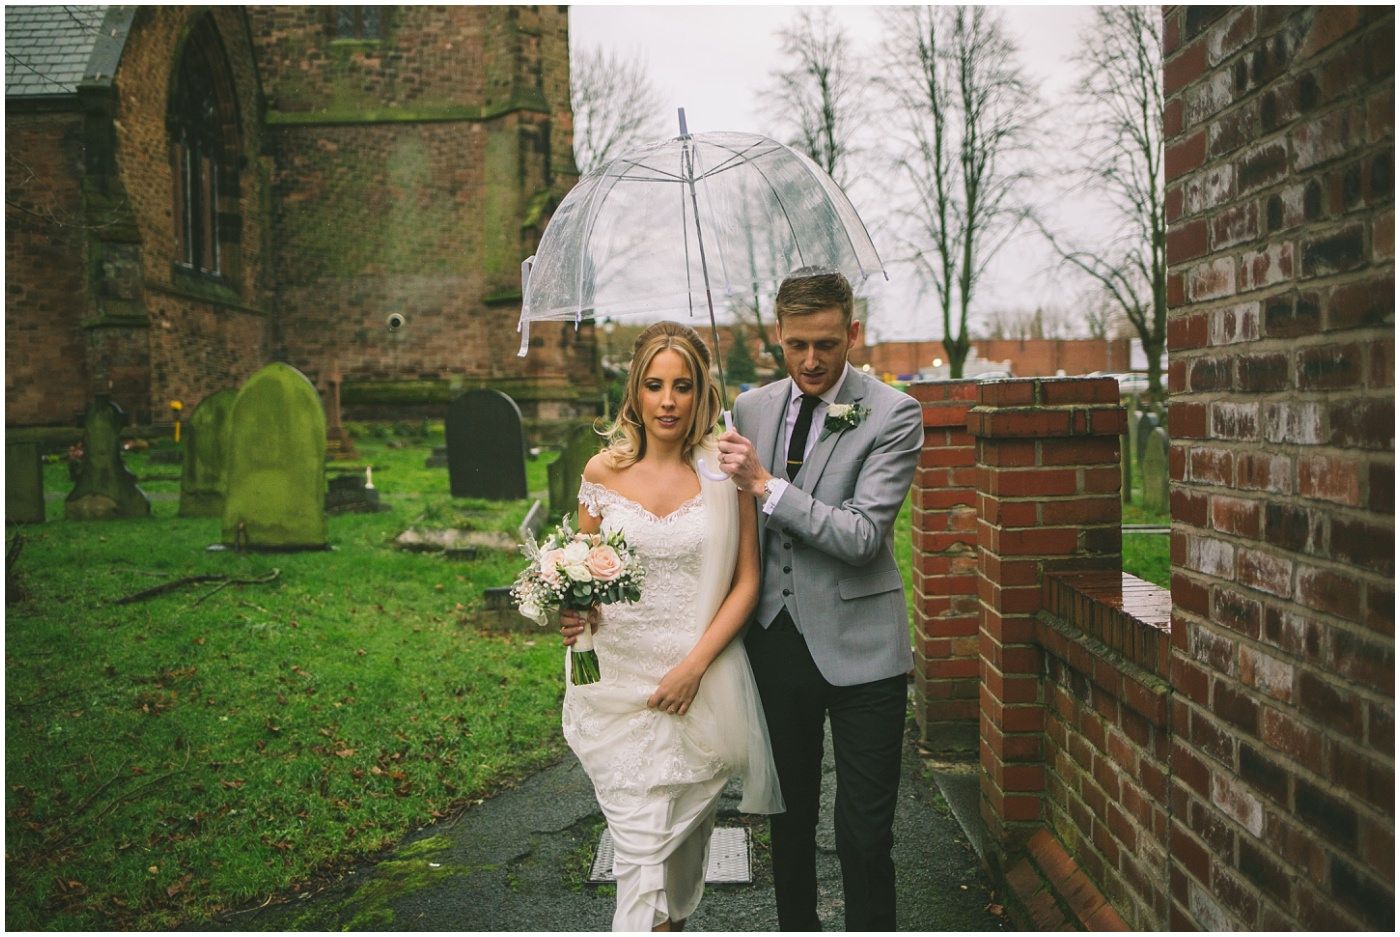 Groom holds umbrella over his bride as they exit the church